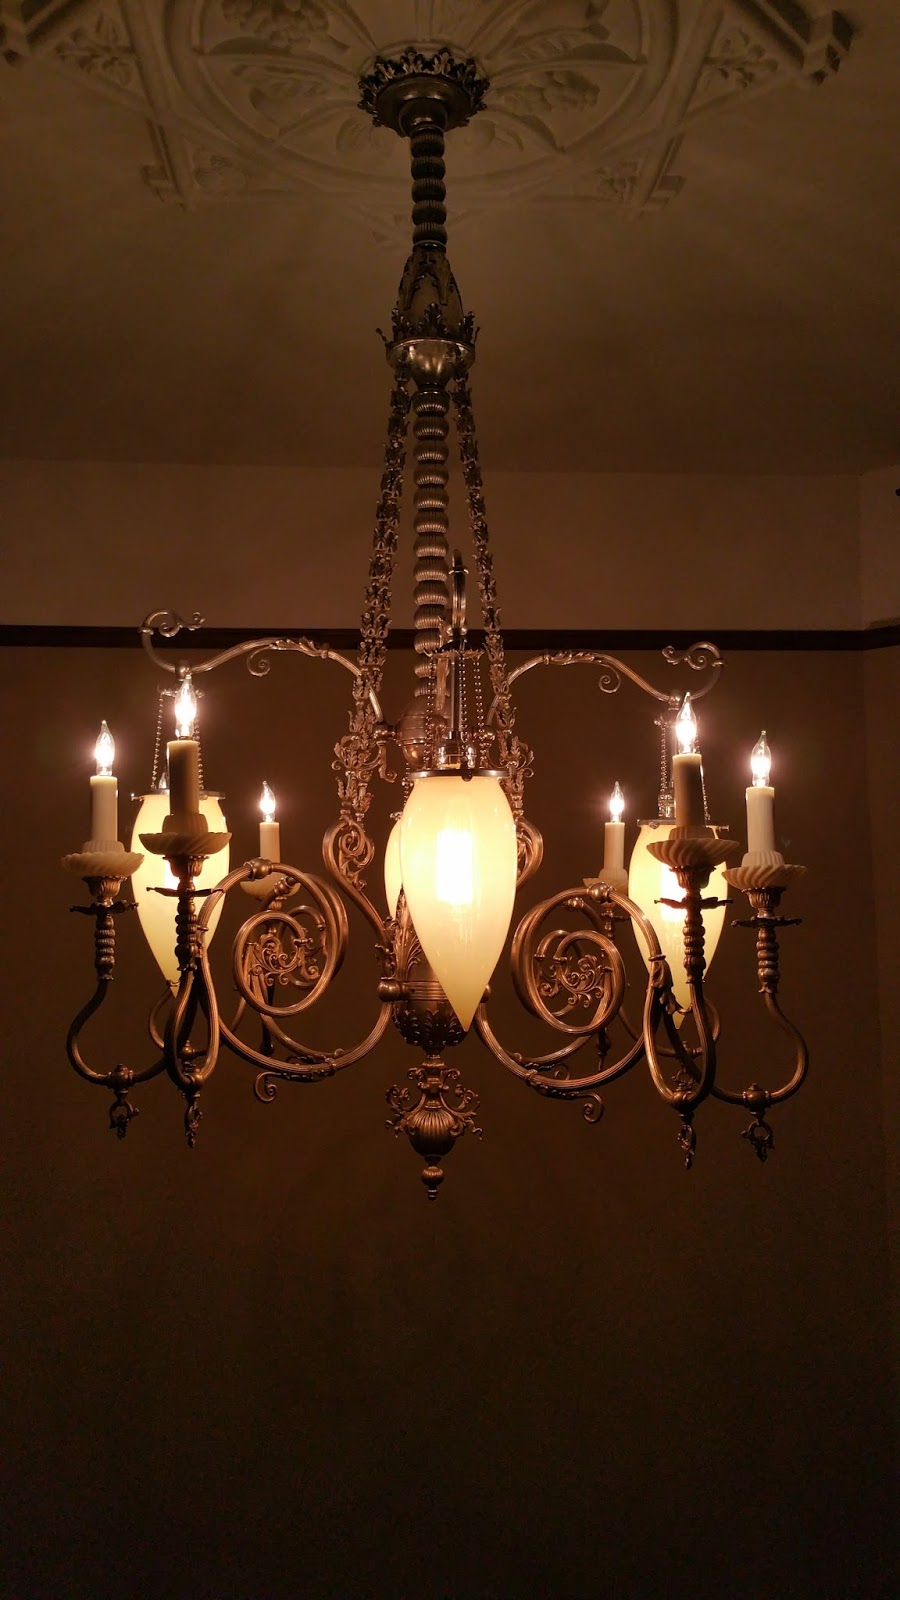 Superb  and that the chandelier would fit down in the tight space when lowered When the time came I lowered it all the way down and it fit perfectly Success